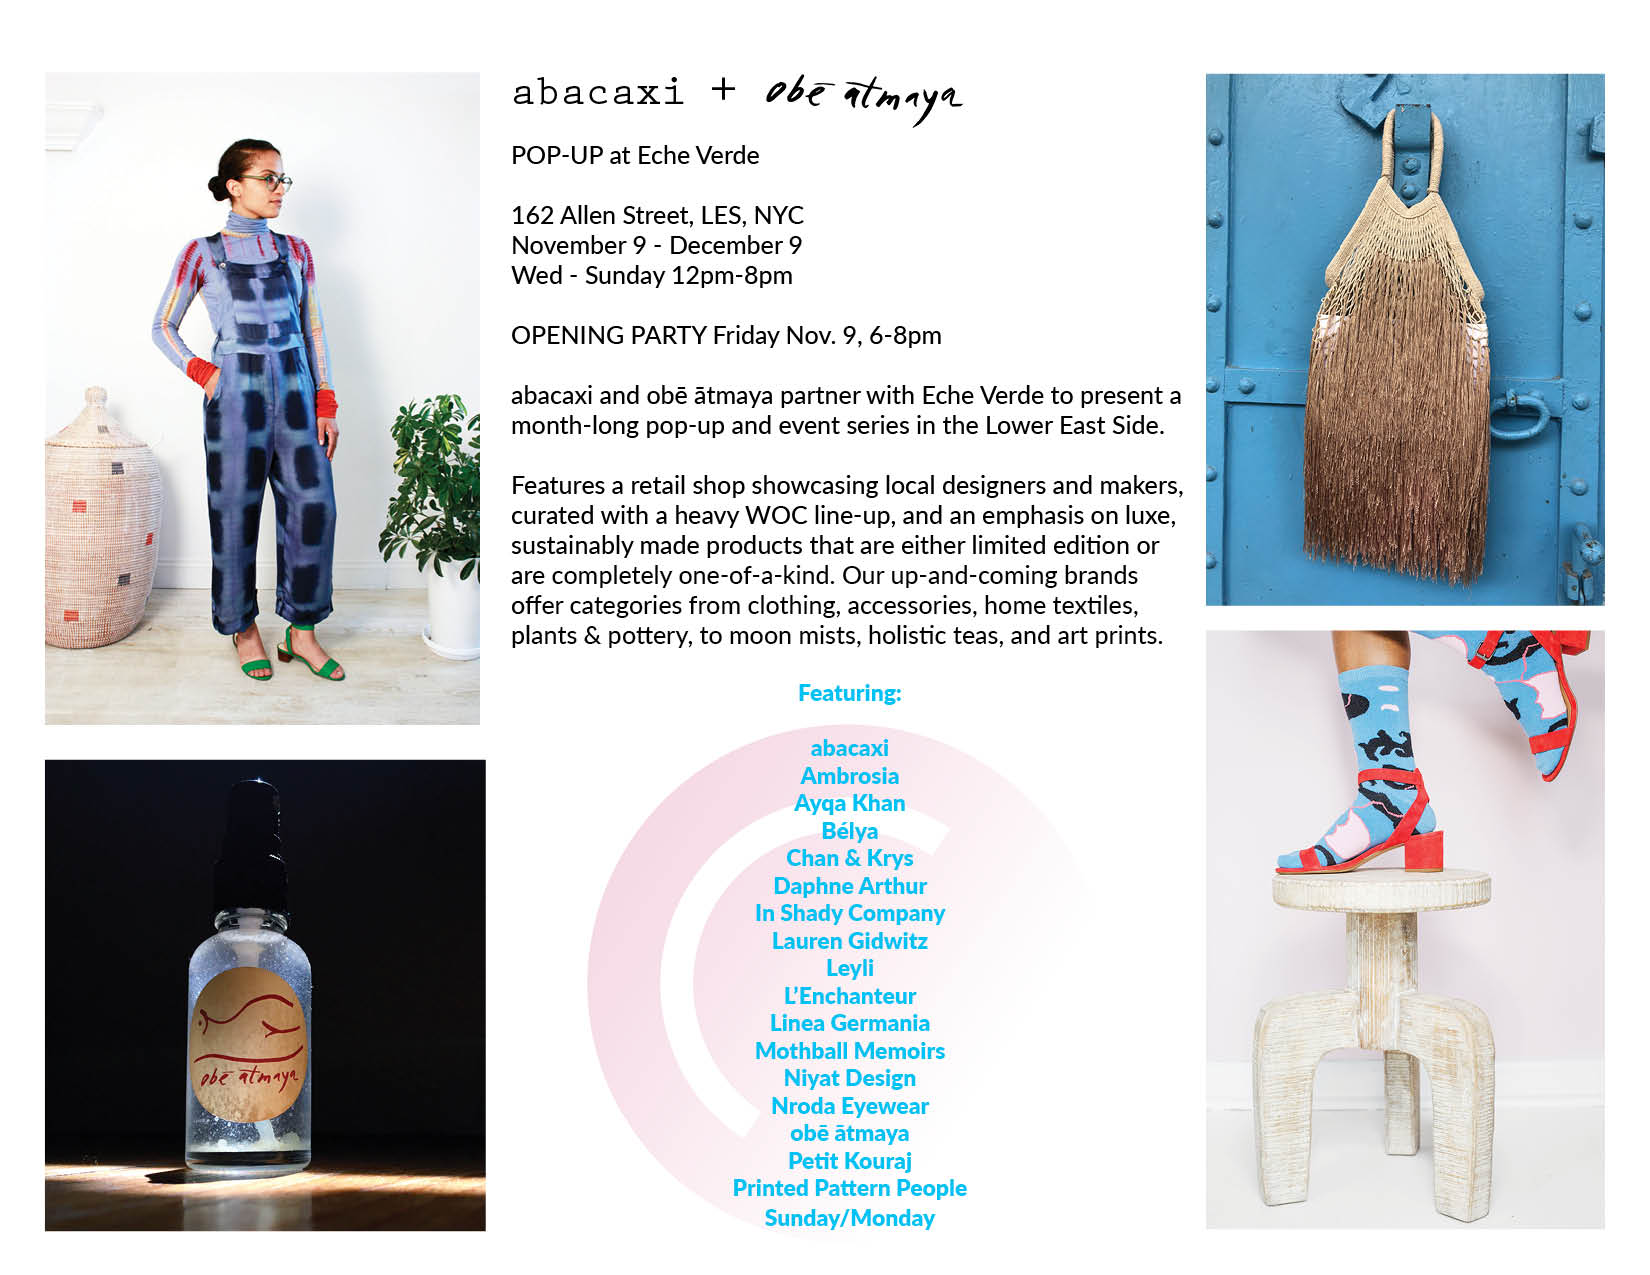 abacaxi popup press release .jpg